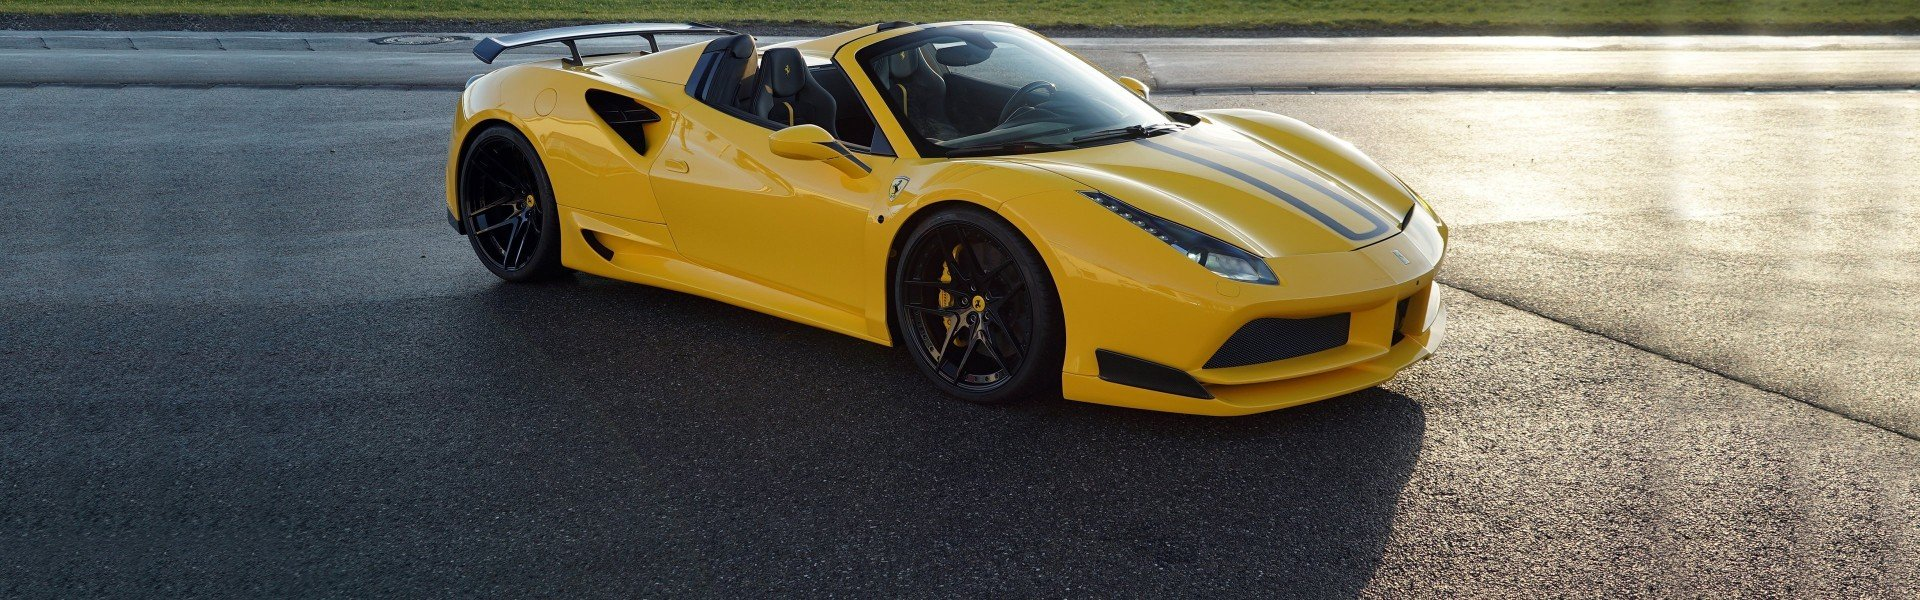 488 spider nlargo header